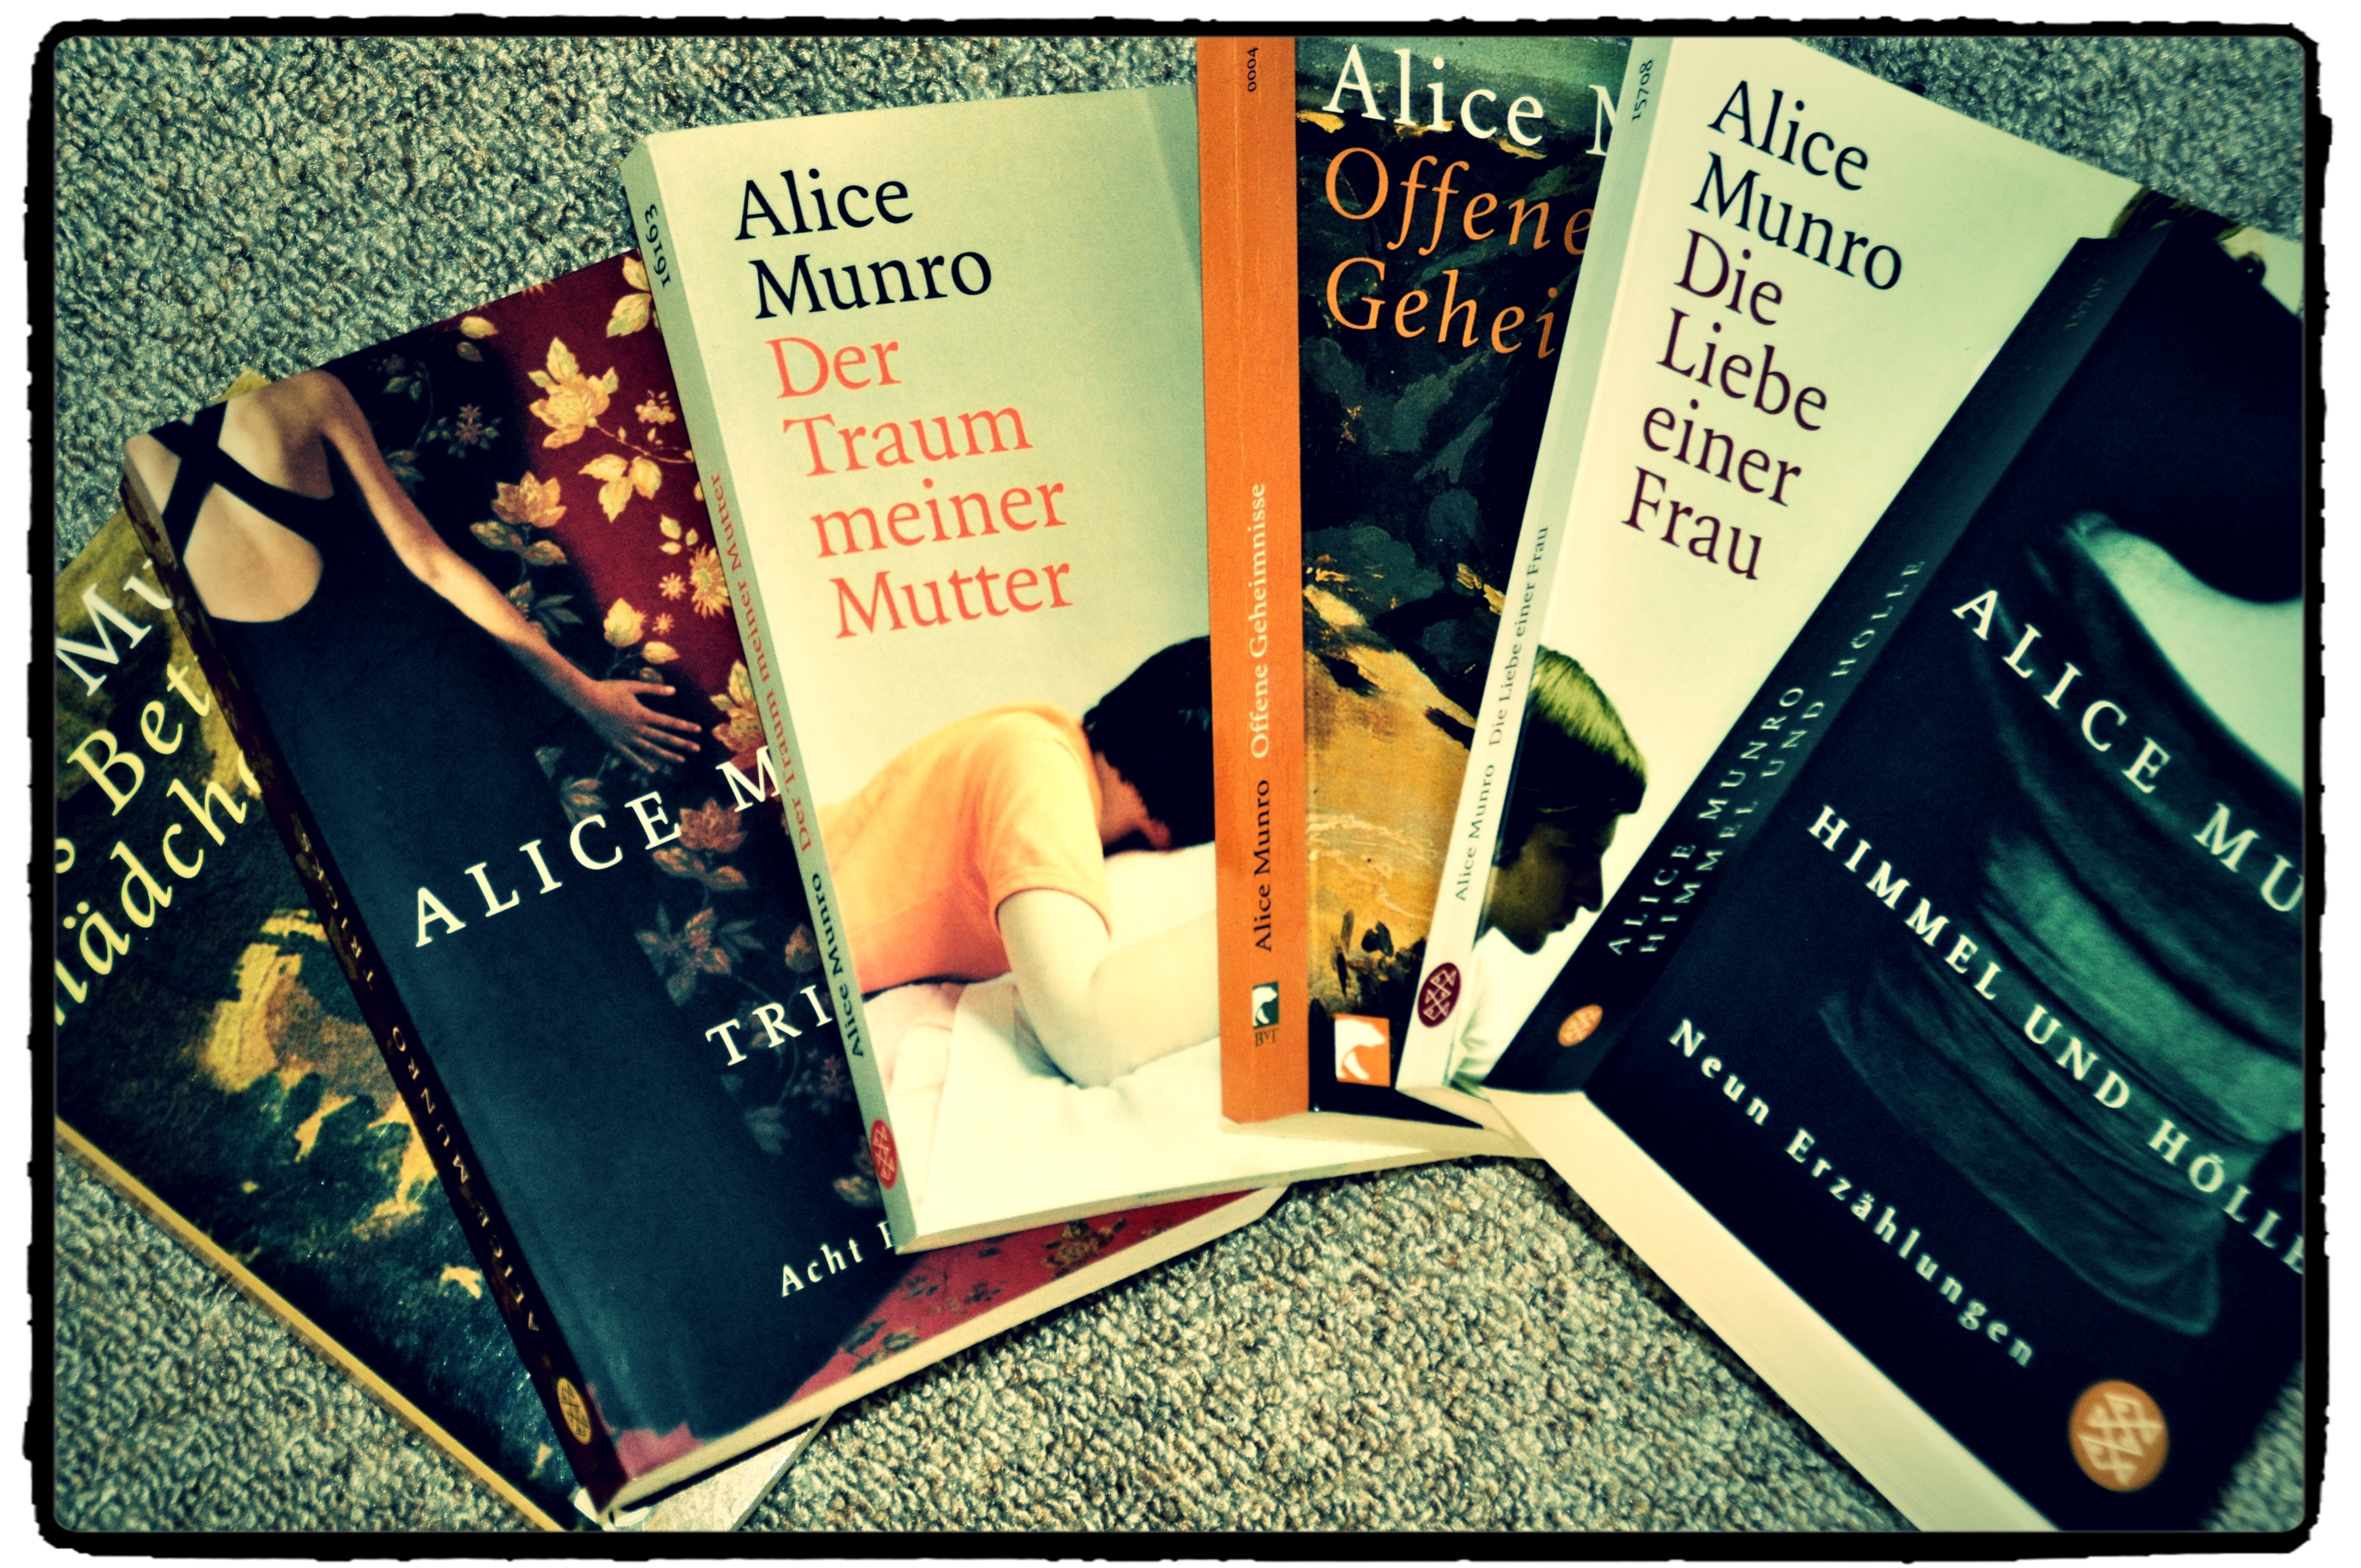 the static character of alice in the short story boys and girls by alice munro A literary review of boys and girls, a short story by alice munro pages 4 words 1,119 view full essay more essays like this: not sure what i'd do without @kibin.